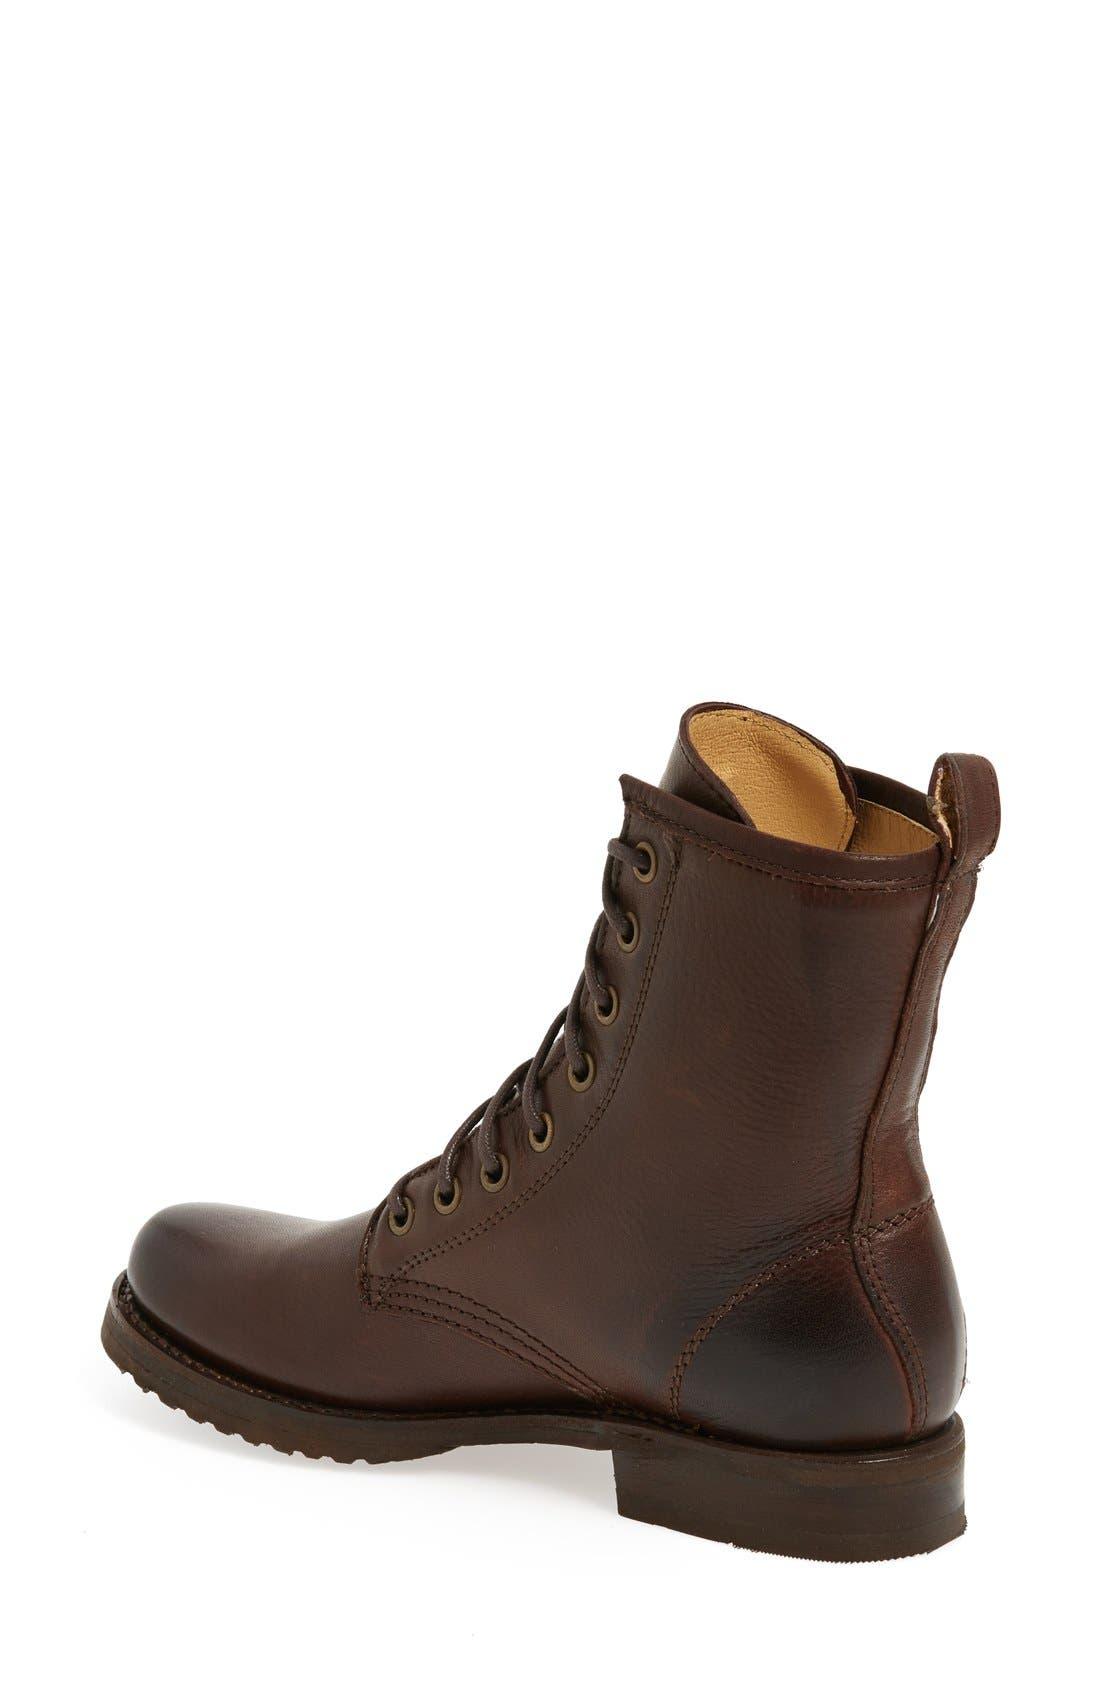 Alternate Image 2  - Frye 'Veronica Combat' Boot (Women)